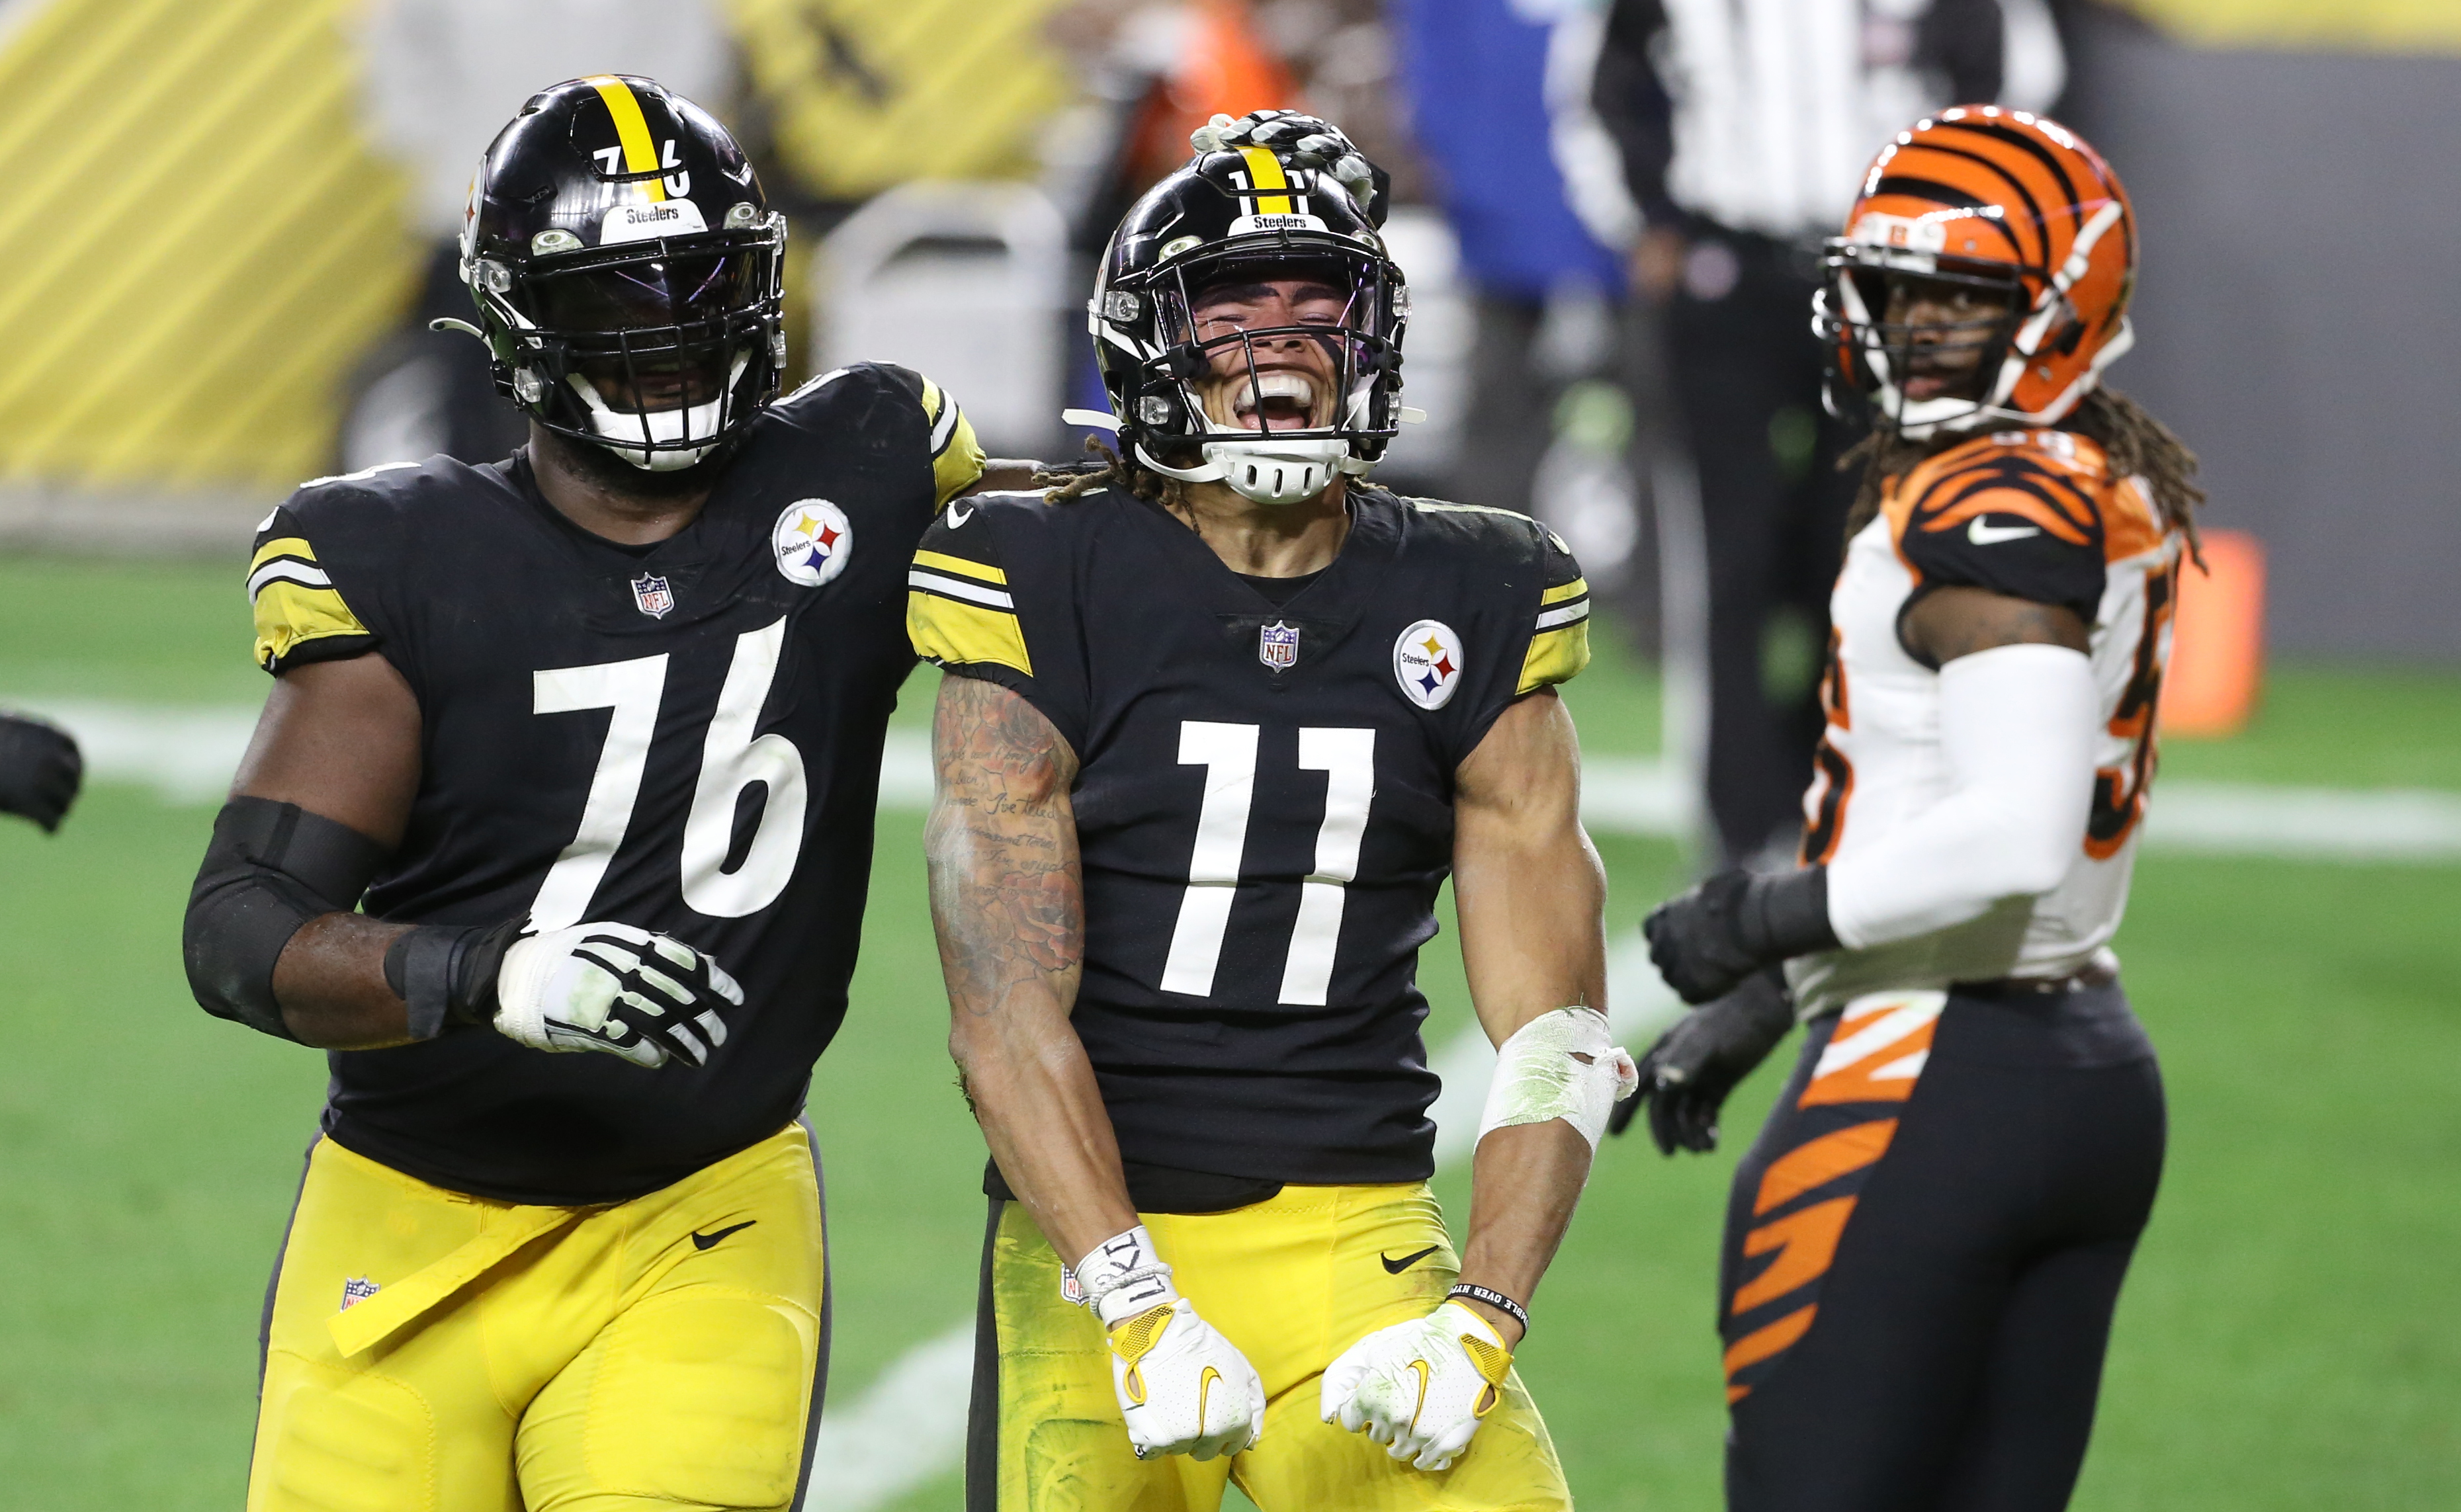 Pittsburgh Steelers offensive tackle Chukwuma Okorafor (76) celebrates a touchdown by wide receiver Chase Claypool (11) against the Cincinnati Bengals during the fourth quarter at Heinz Field. The Steelers won 36-10.